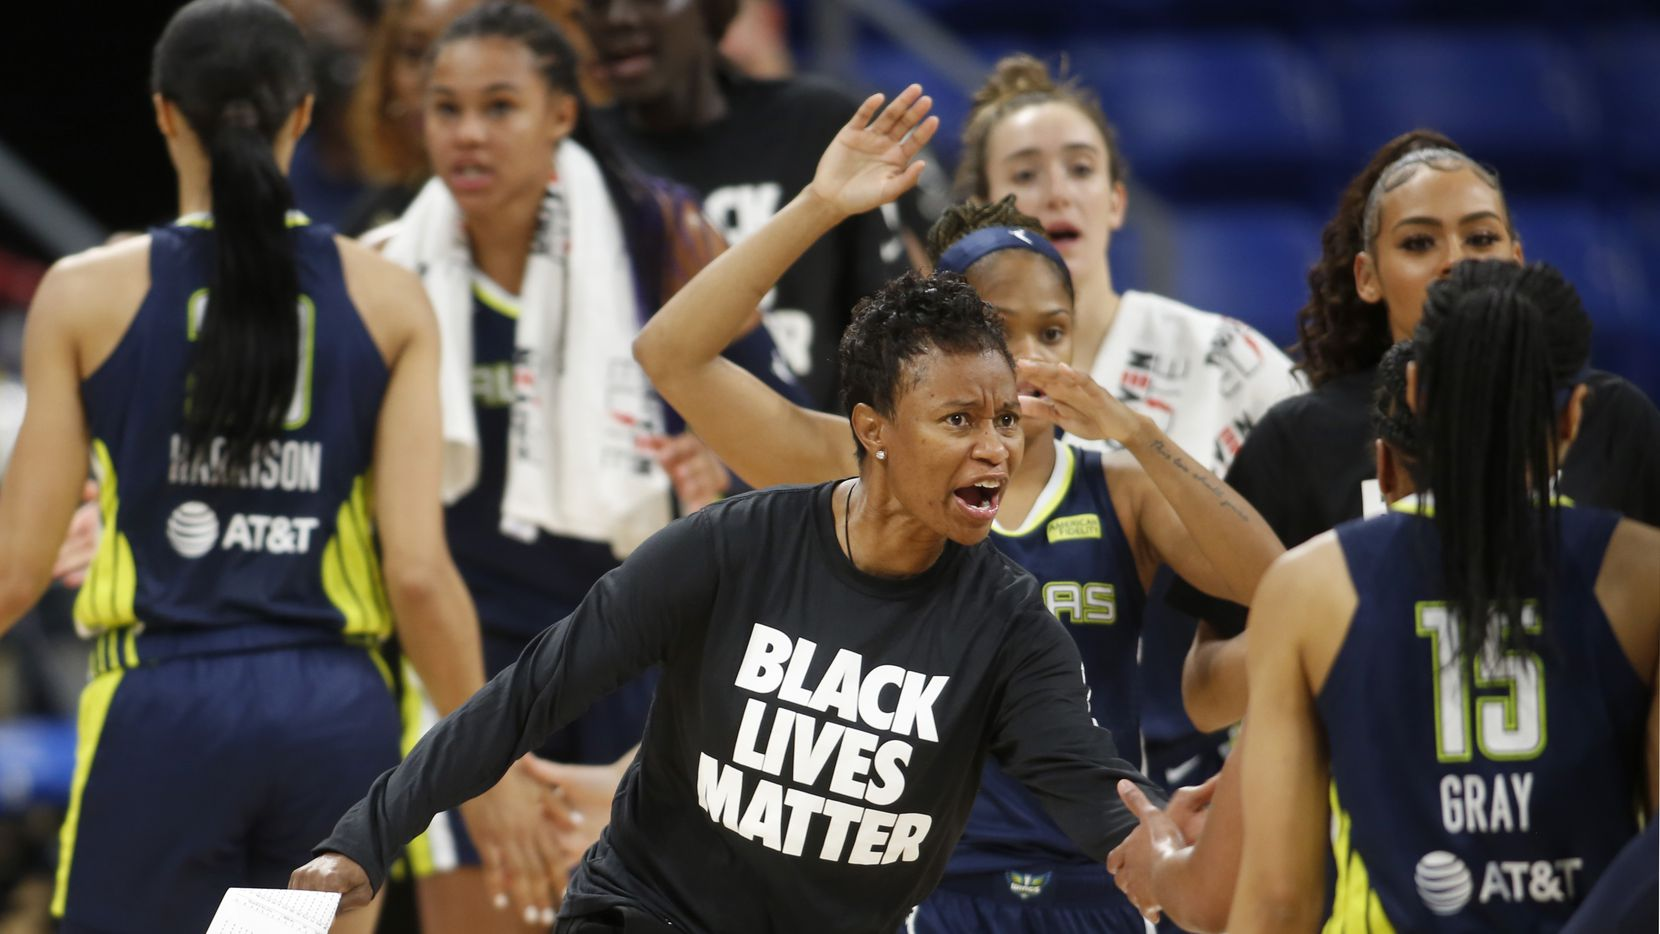 Dallas Wings head coach Vickie Johnson enthusiastically greets her players as they head to the team bench for a called time-out during the first quarter of play against the Minnesota Lynx. The two teams played their WNBA game at College Park Center on the campus of the University of Arlington on June 17, 2021.